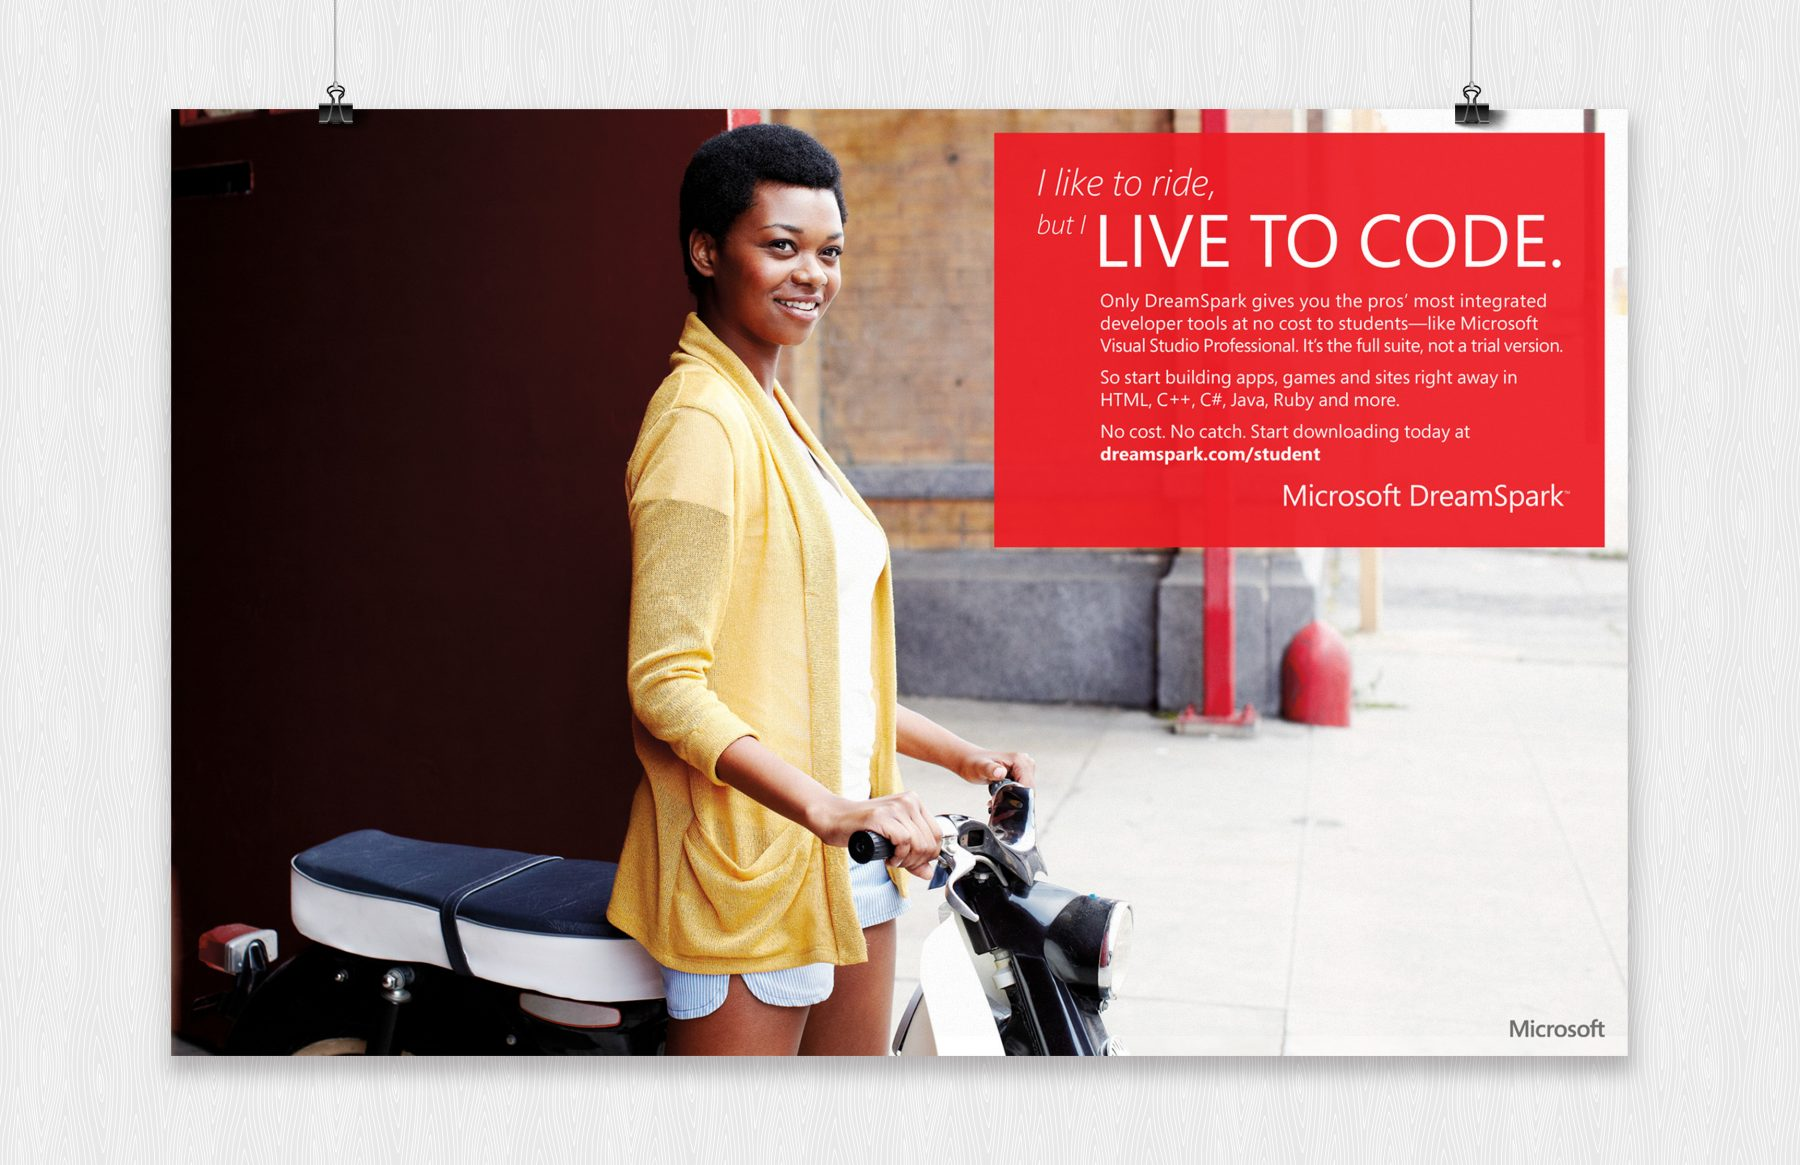 microsoft live to code poster ride